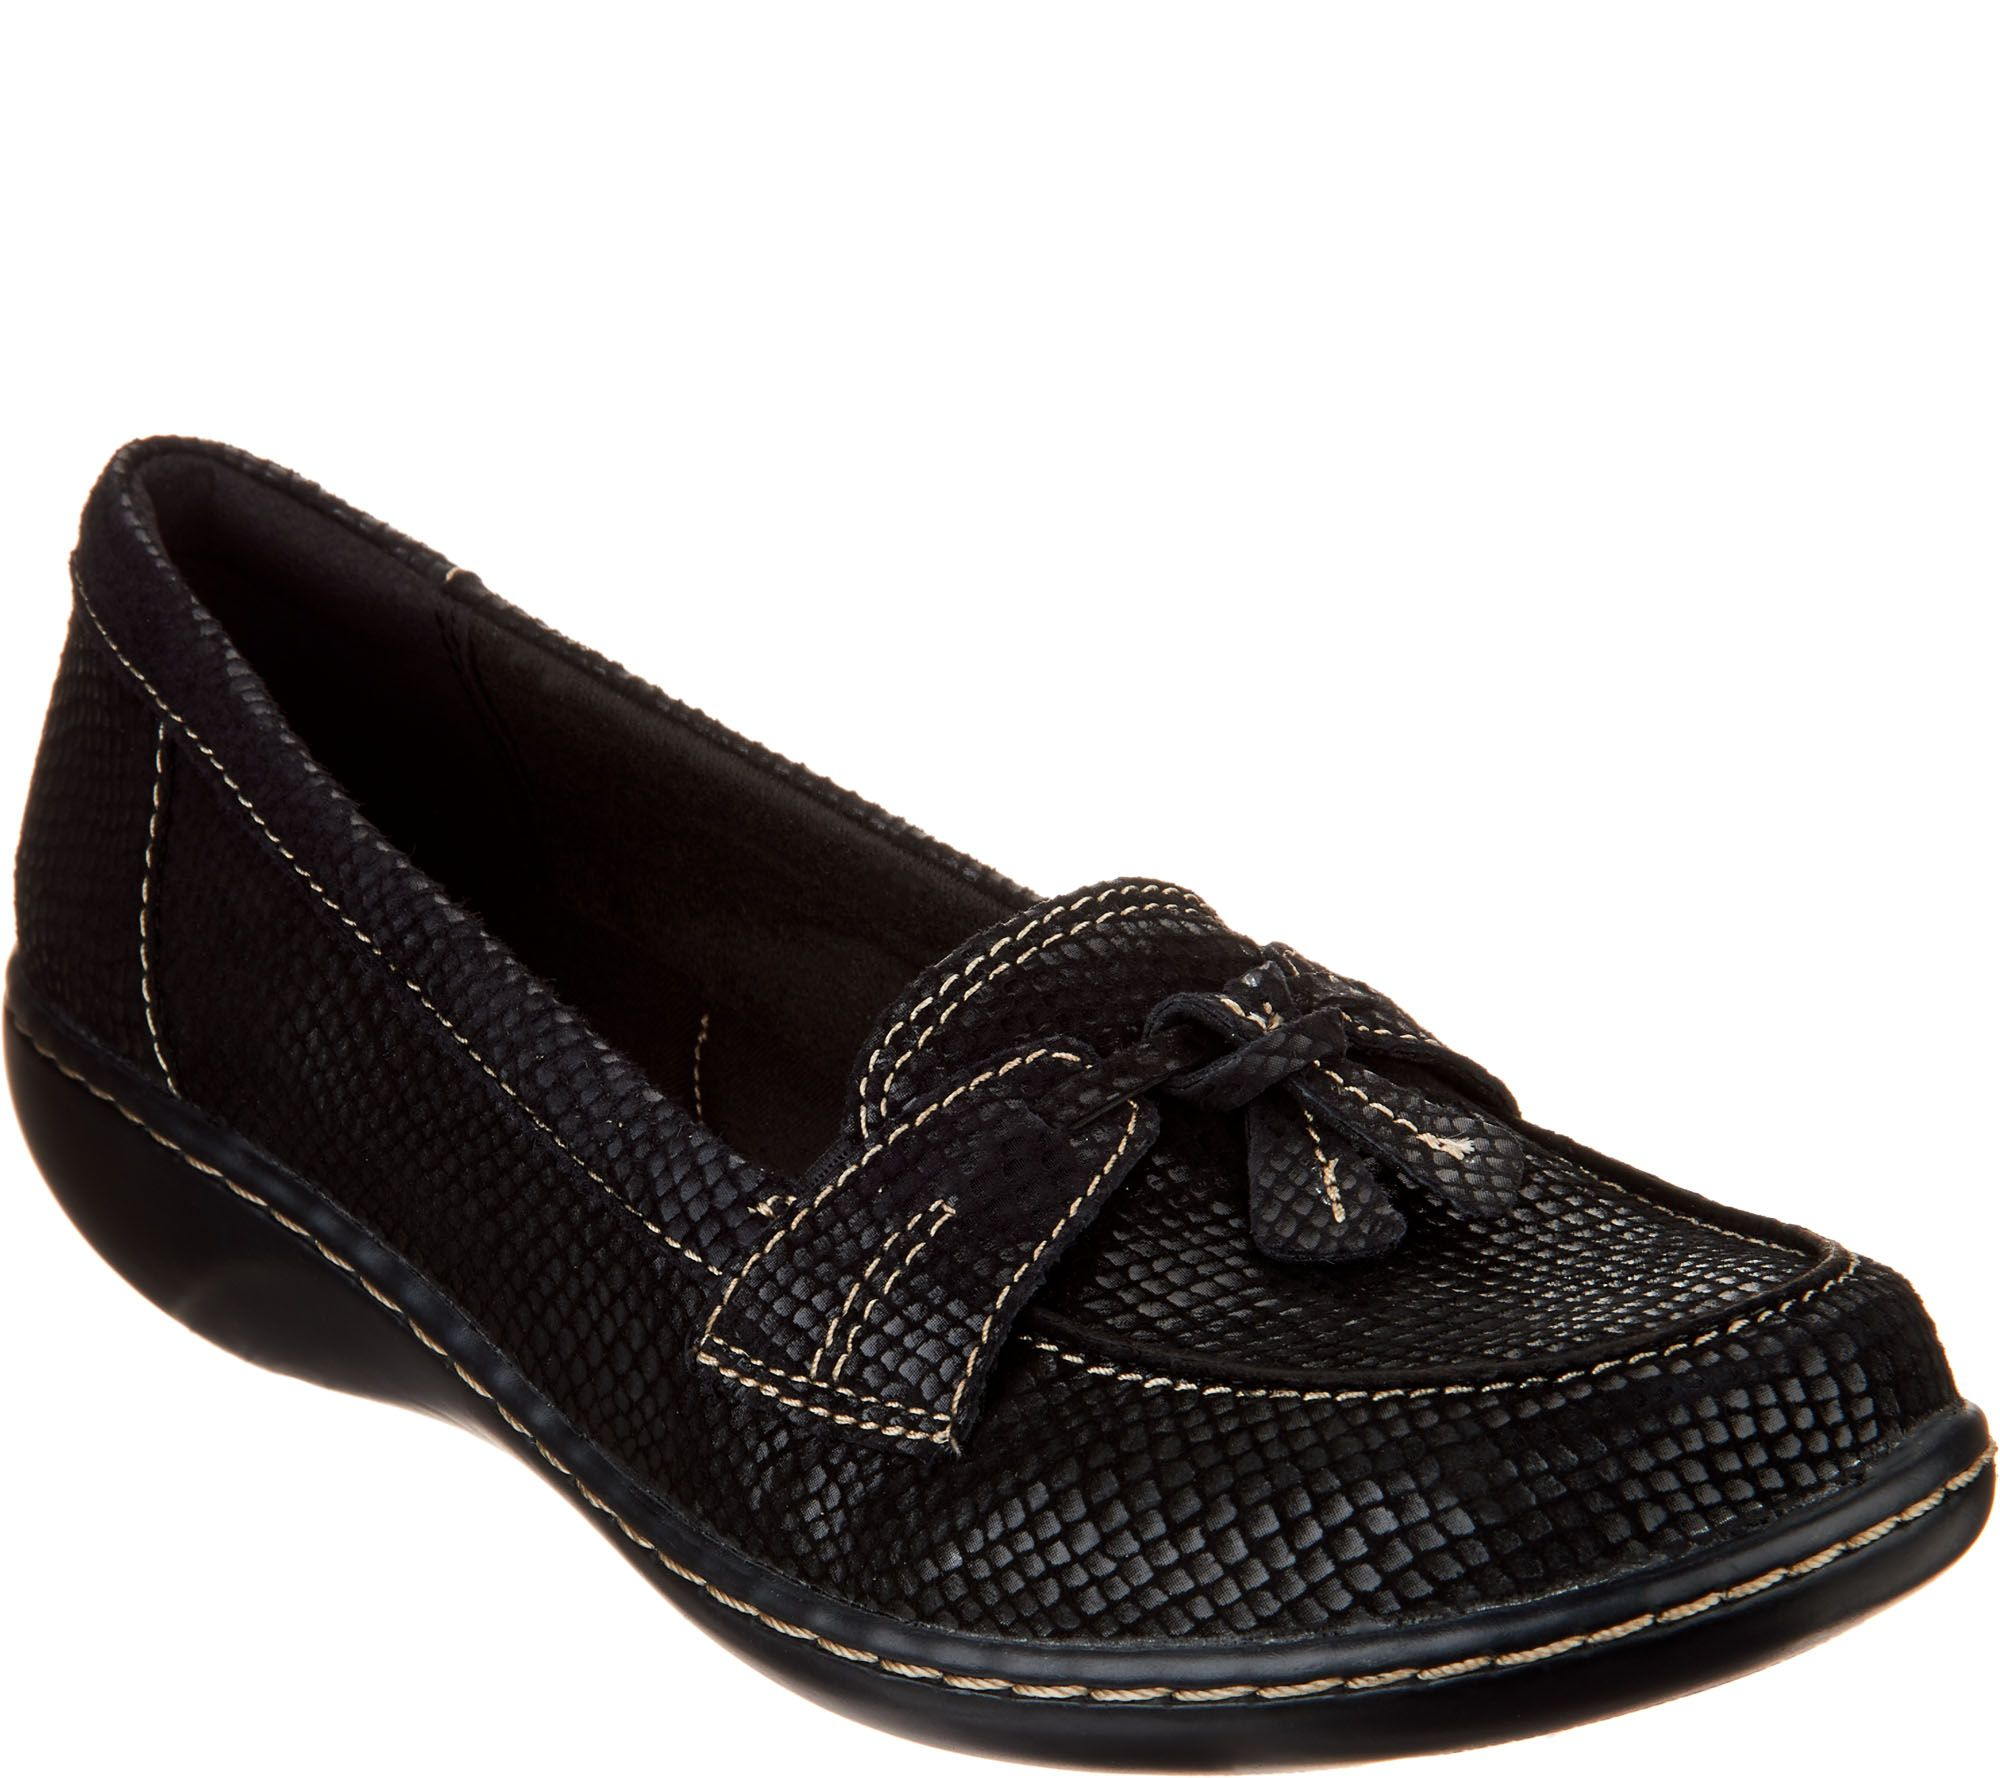 546f39c3f0f Clarks Slip-on Loafers - Ashland Bubble - Page 1 — QVC.com